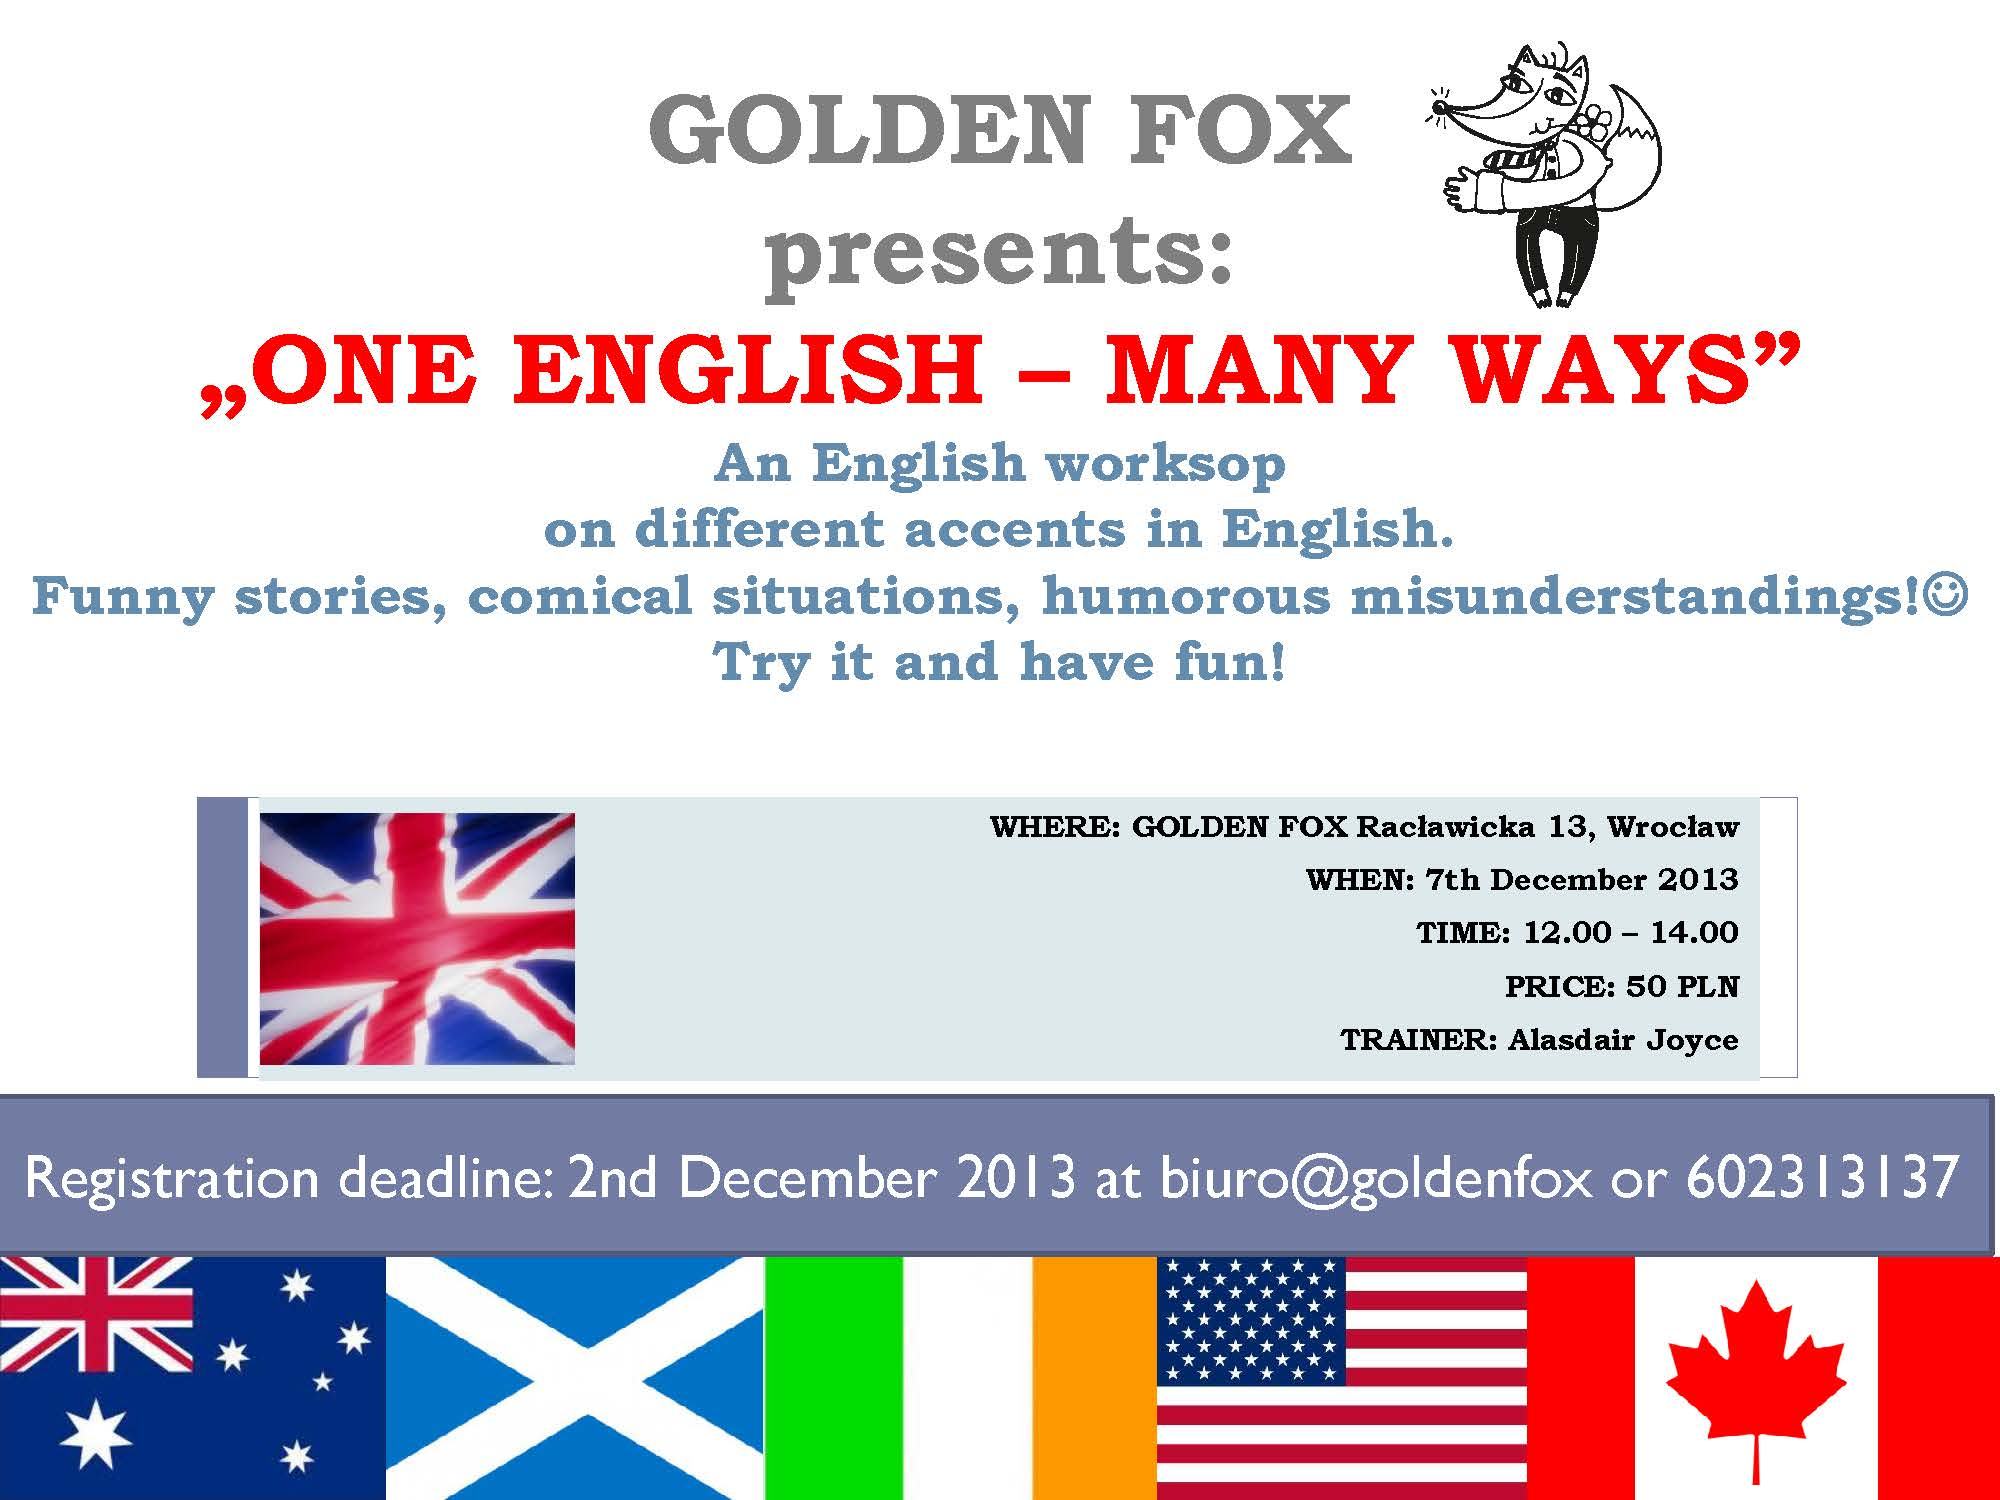 GOLDEN FOX one english many ways workshop accents in english